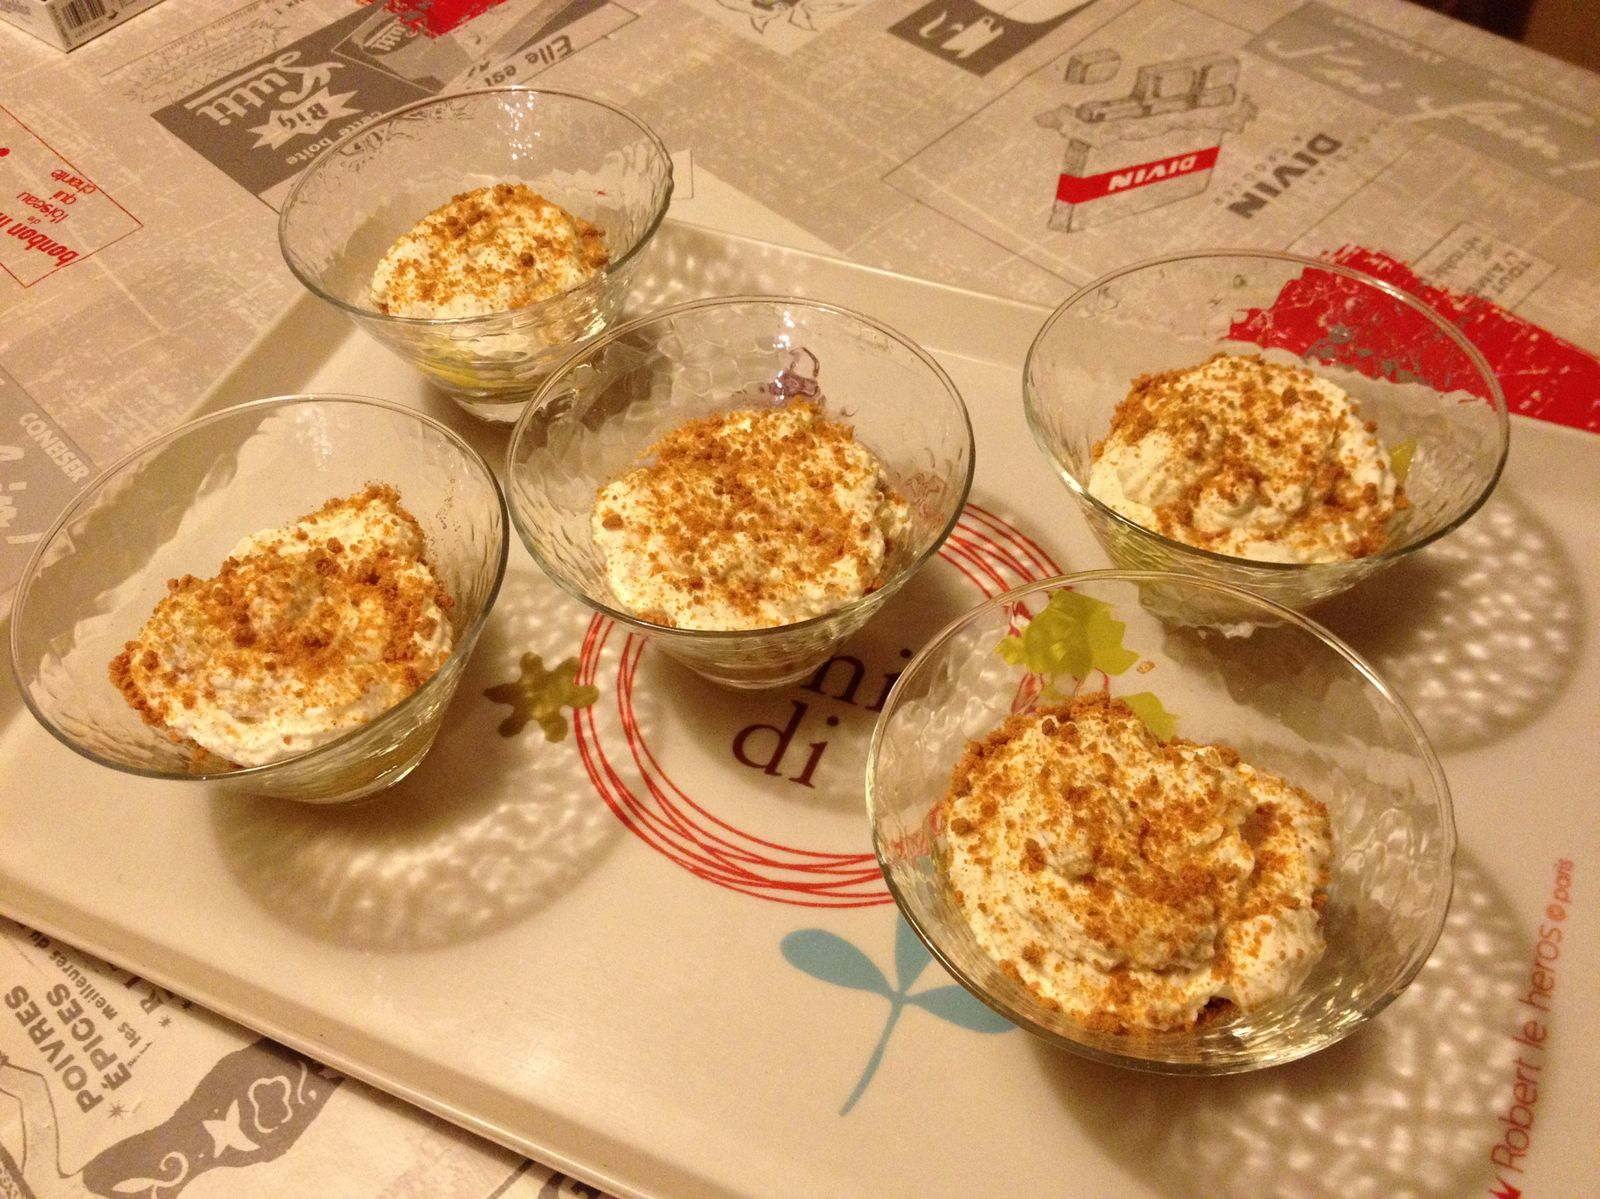 Verrine mangue speculoos et chantilly au mascarpone